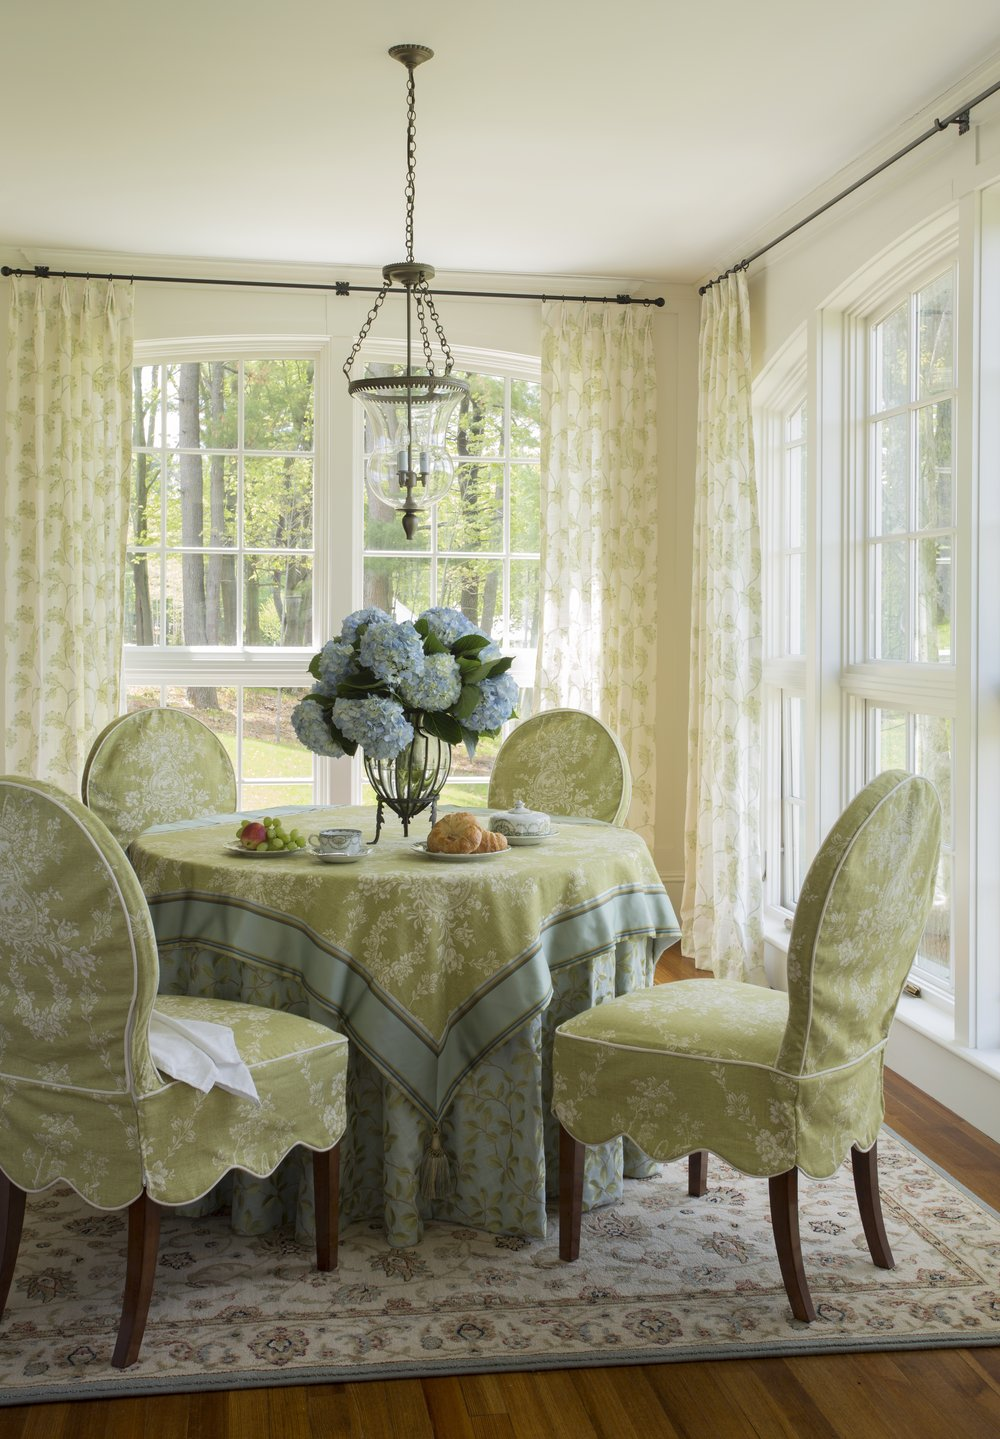 This bell jar fixture is the perfect style for this sunroom corner dining spot.